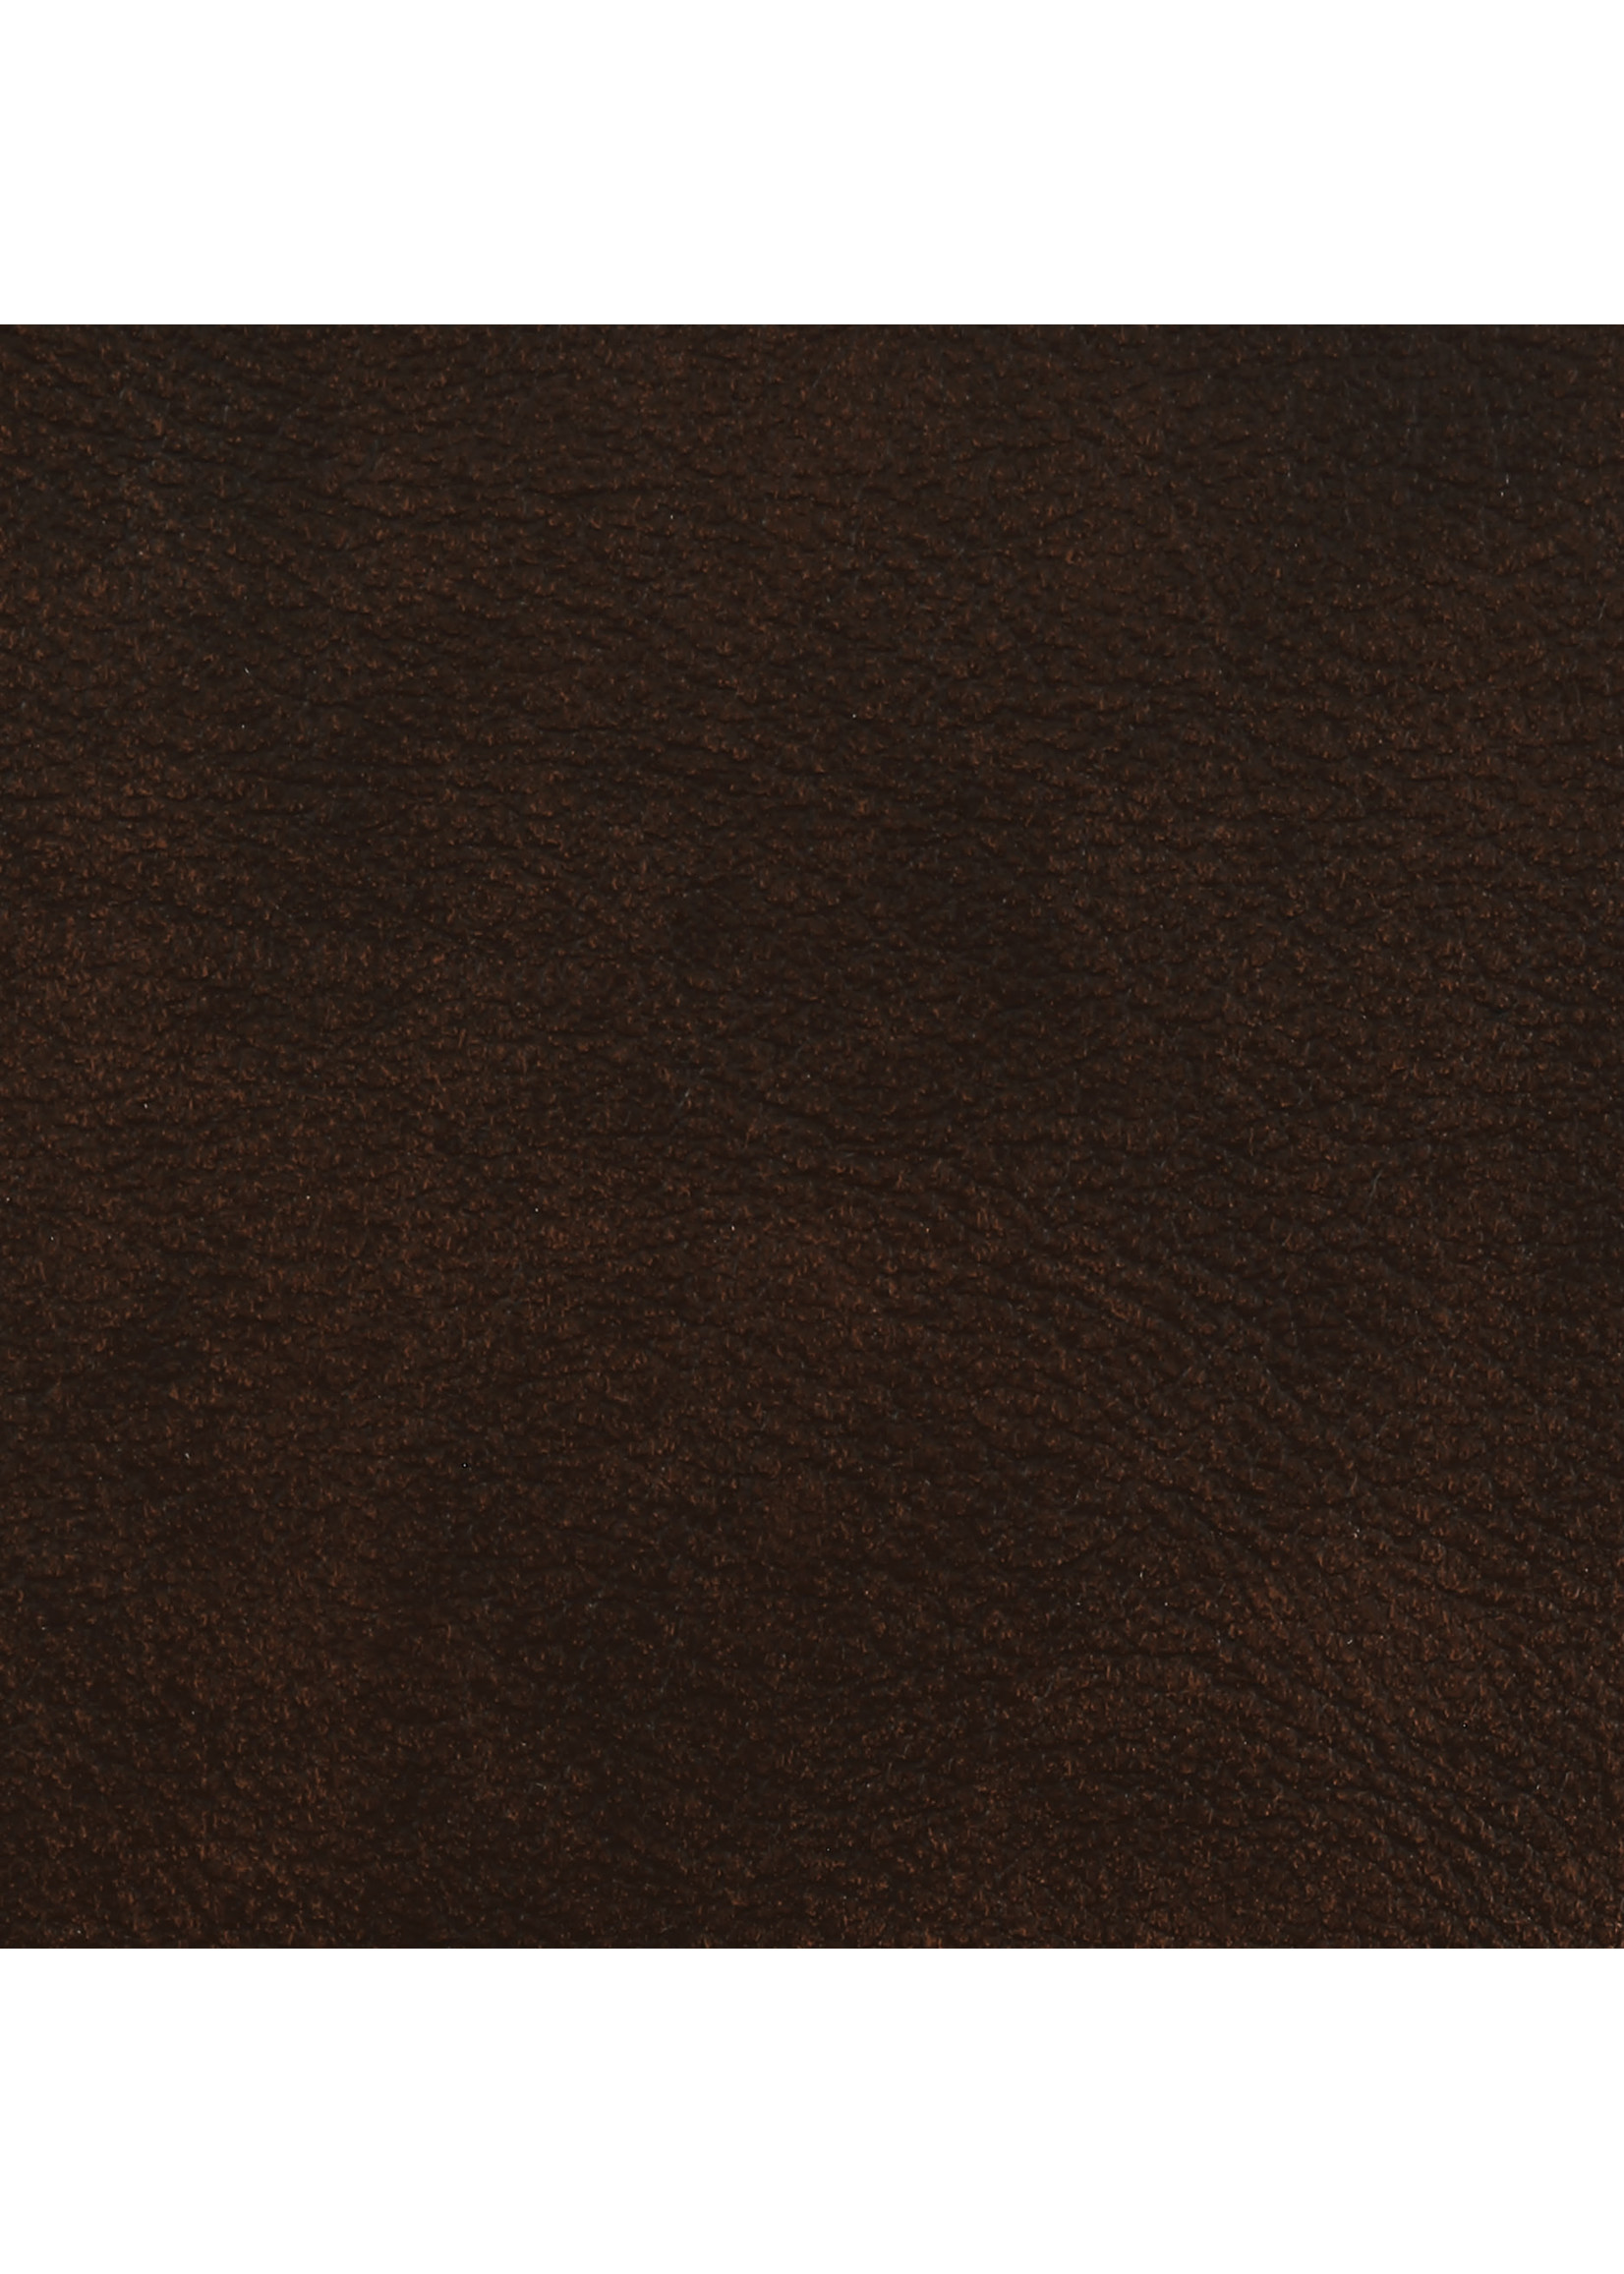 COASTER 503981 SOFA HAND RUBBED LEATHER MONTBROOK  BROWN